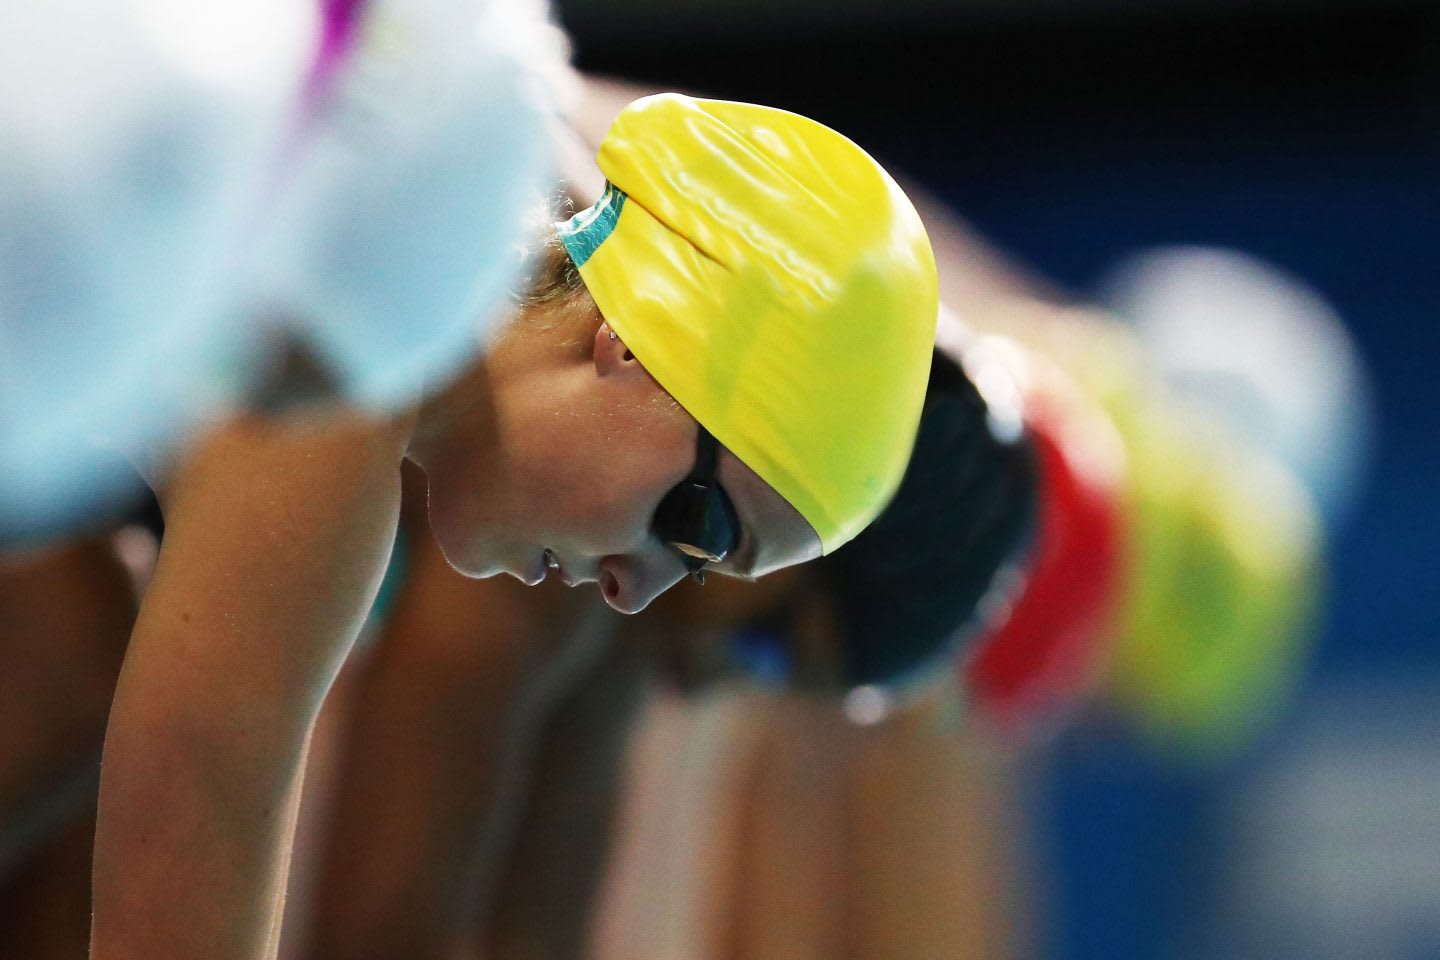 A line of swimmers take mark on the pool's edge in anticipation to dive into the pool. swimming, swimmer, competition, anticipation, focus